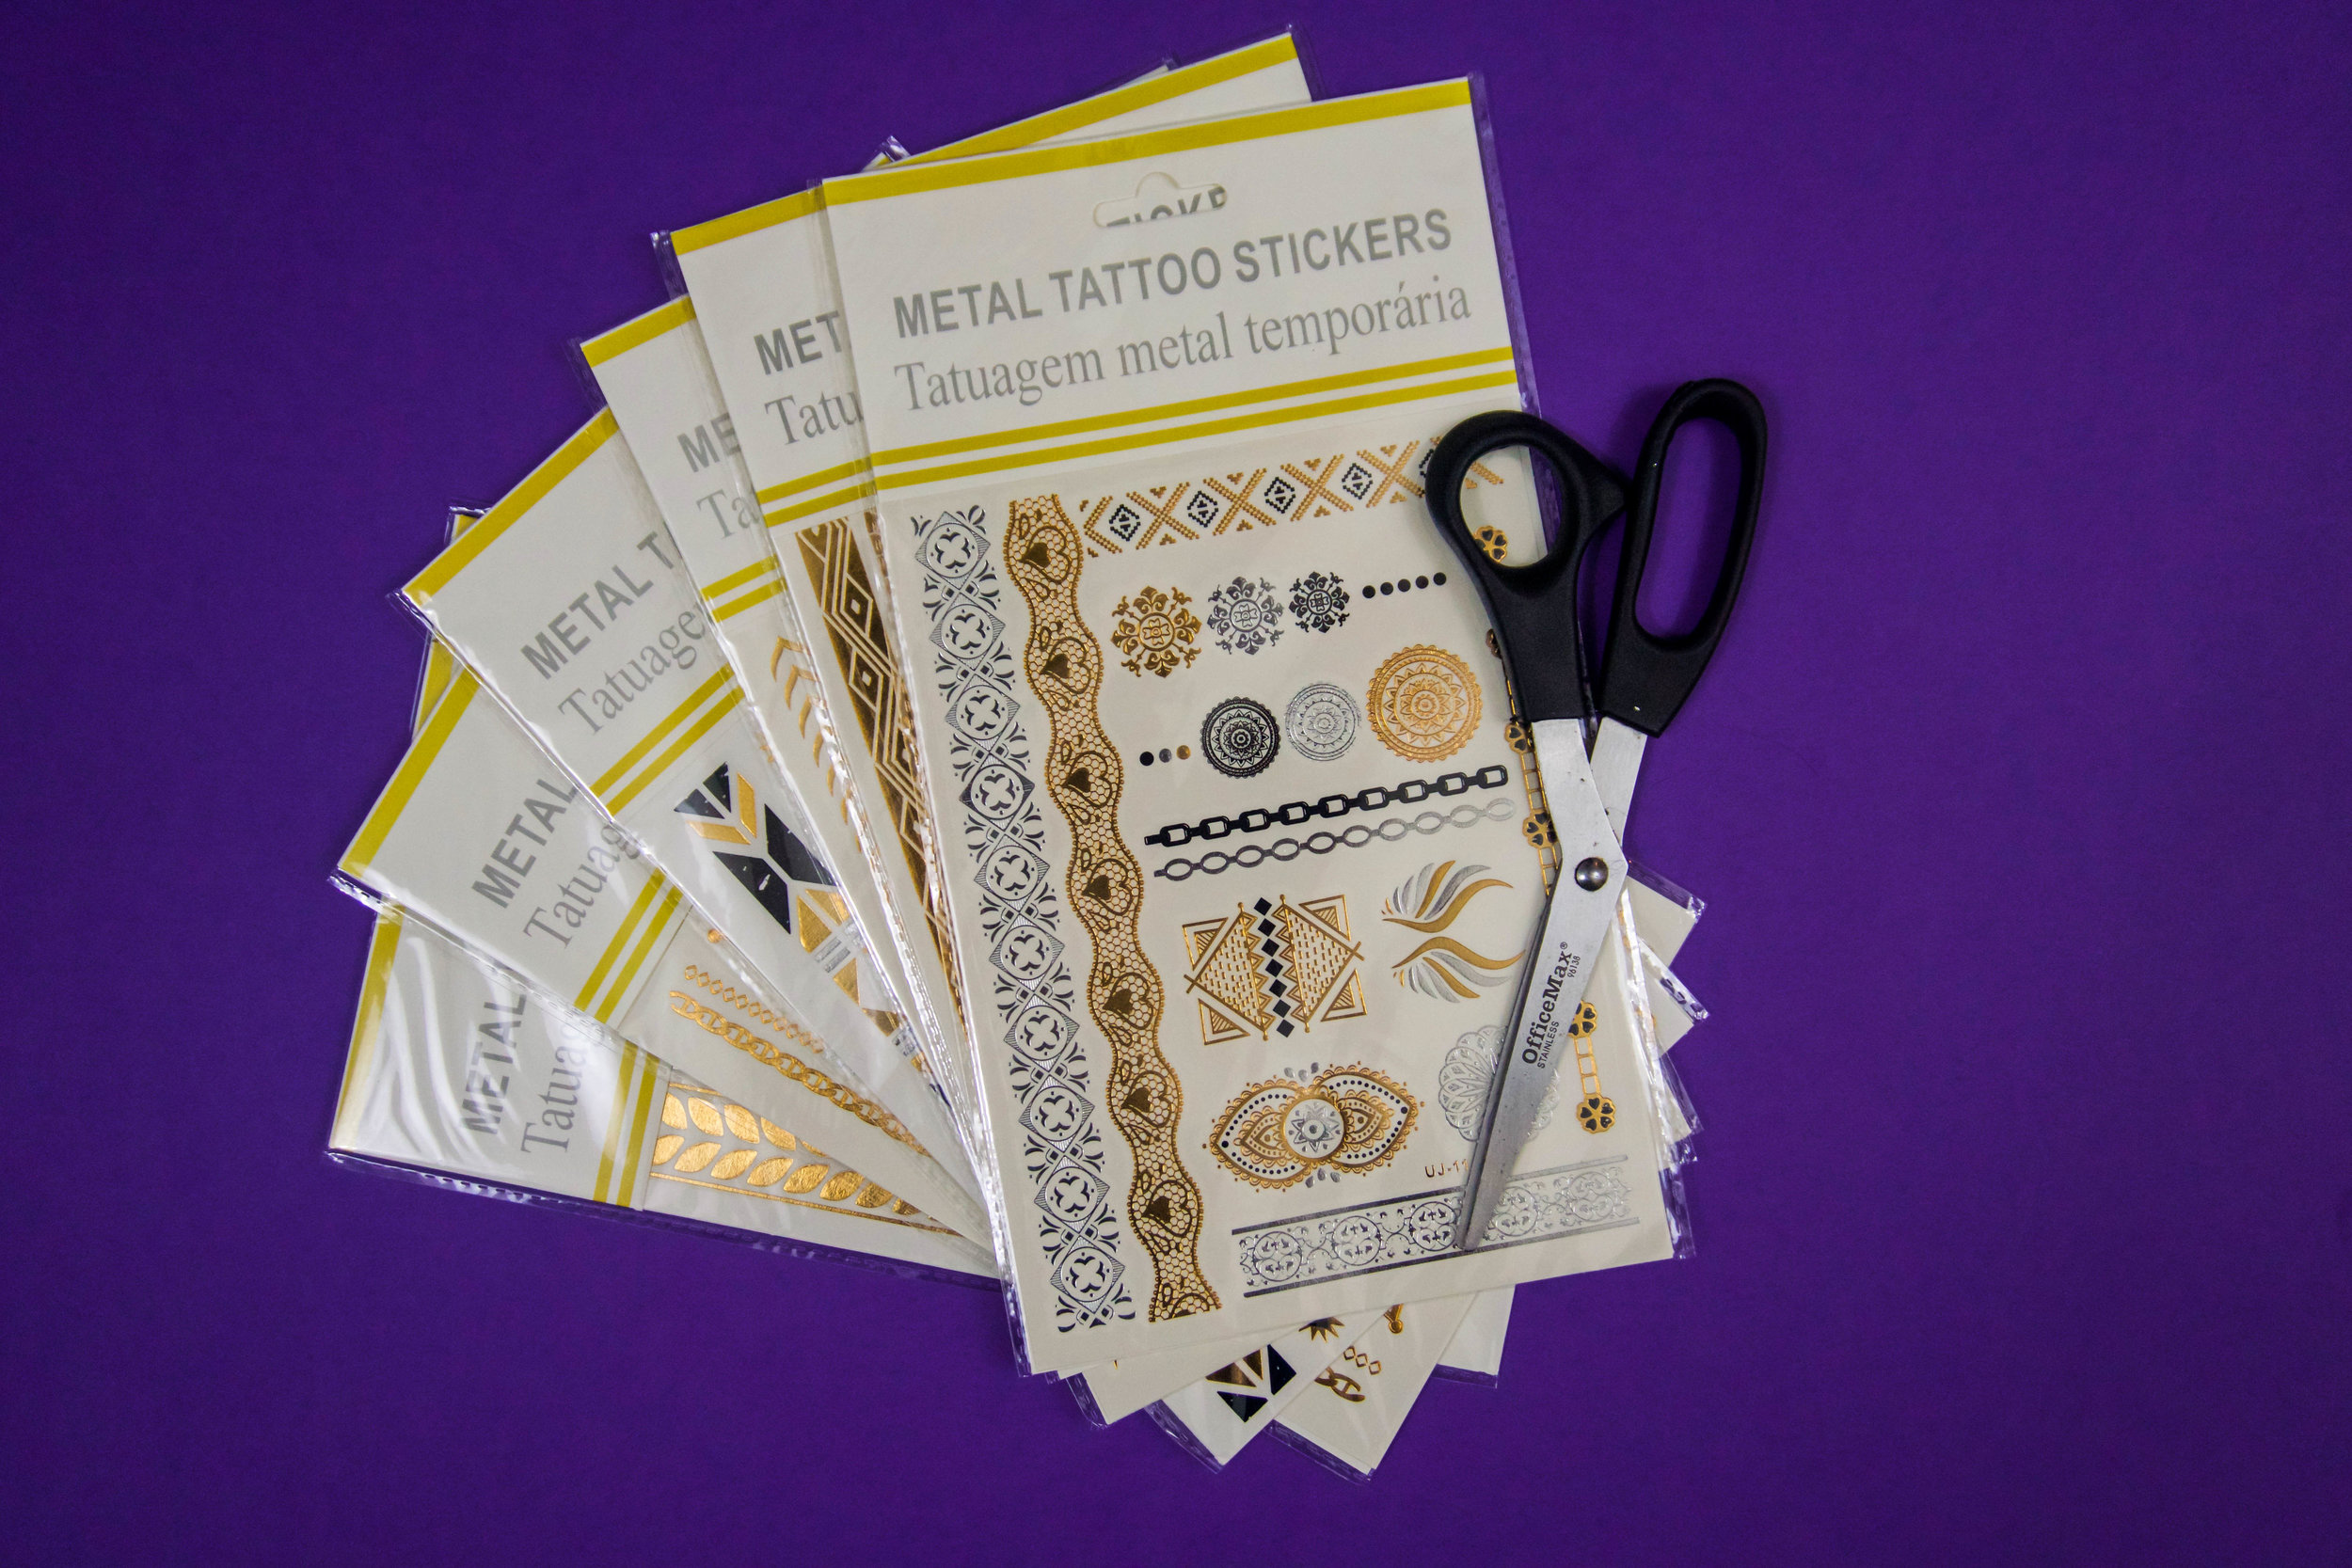 DIY for making the most out of your metallic flash tattoo's for Coachella